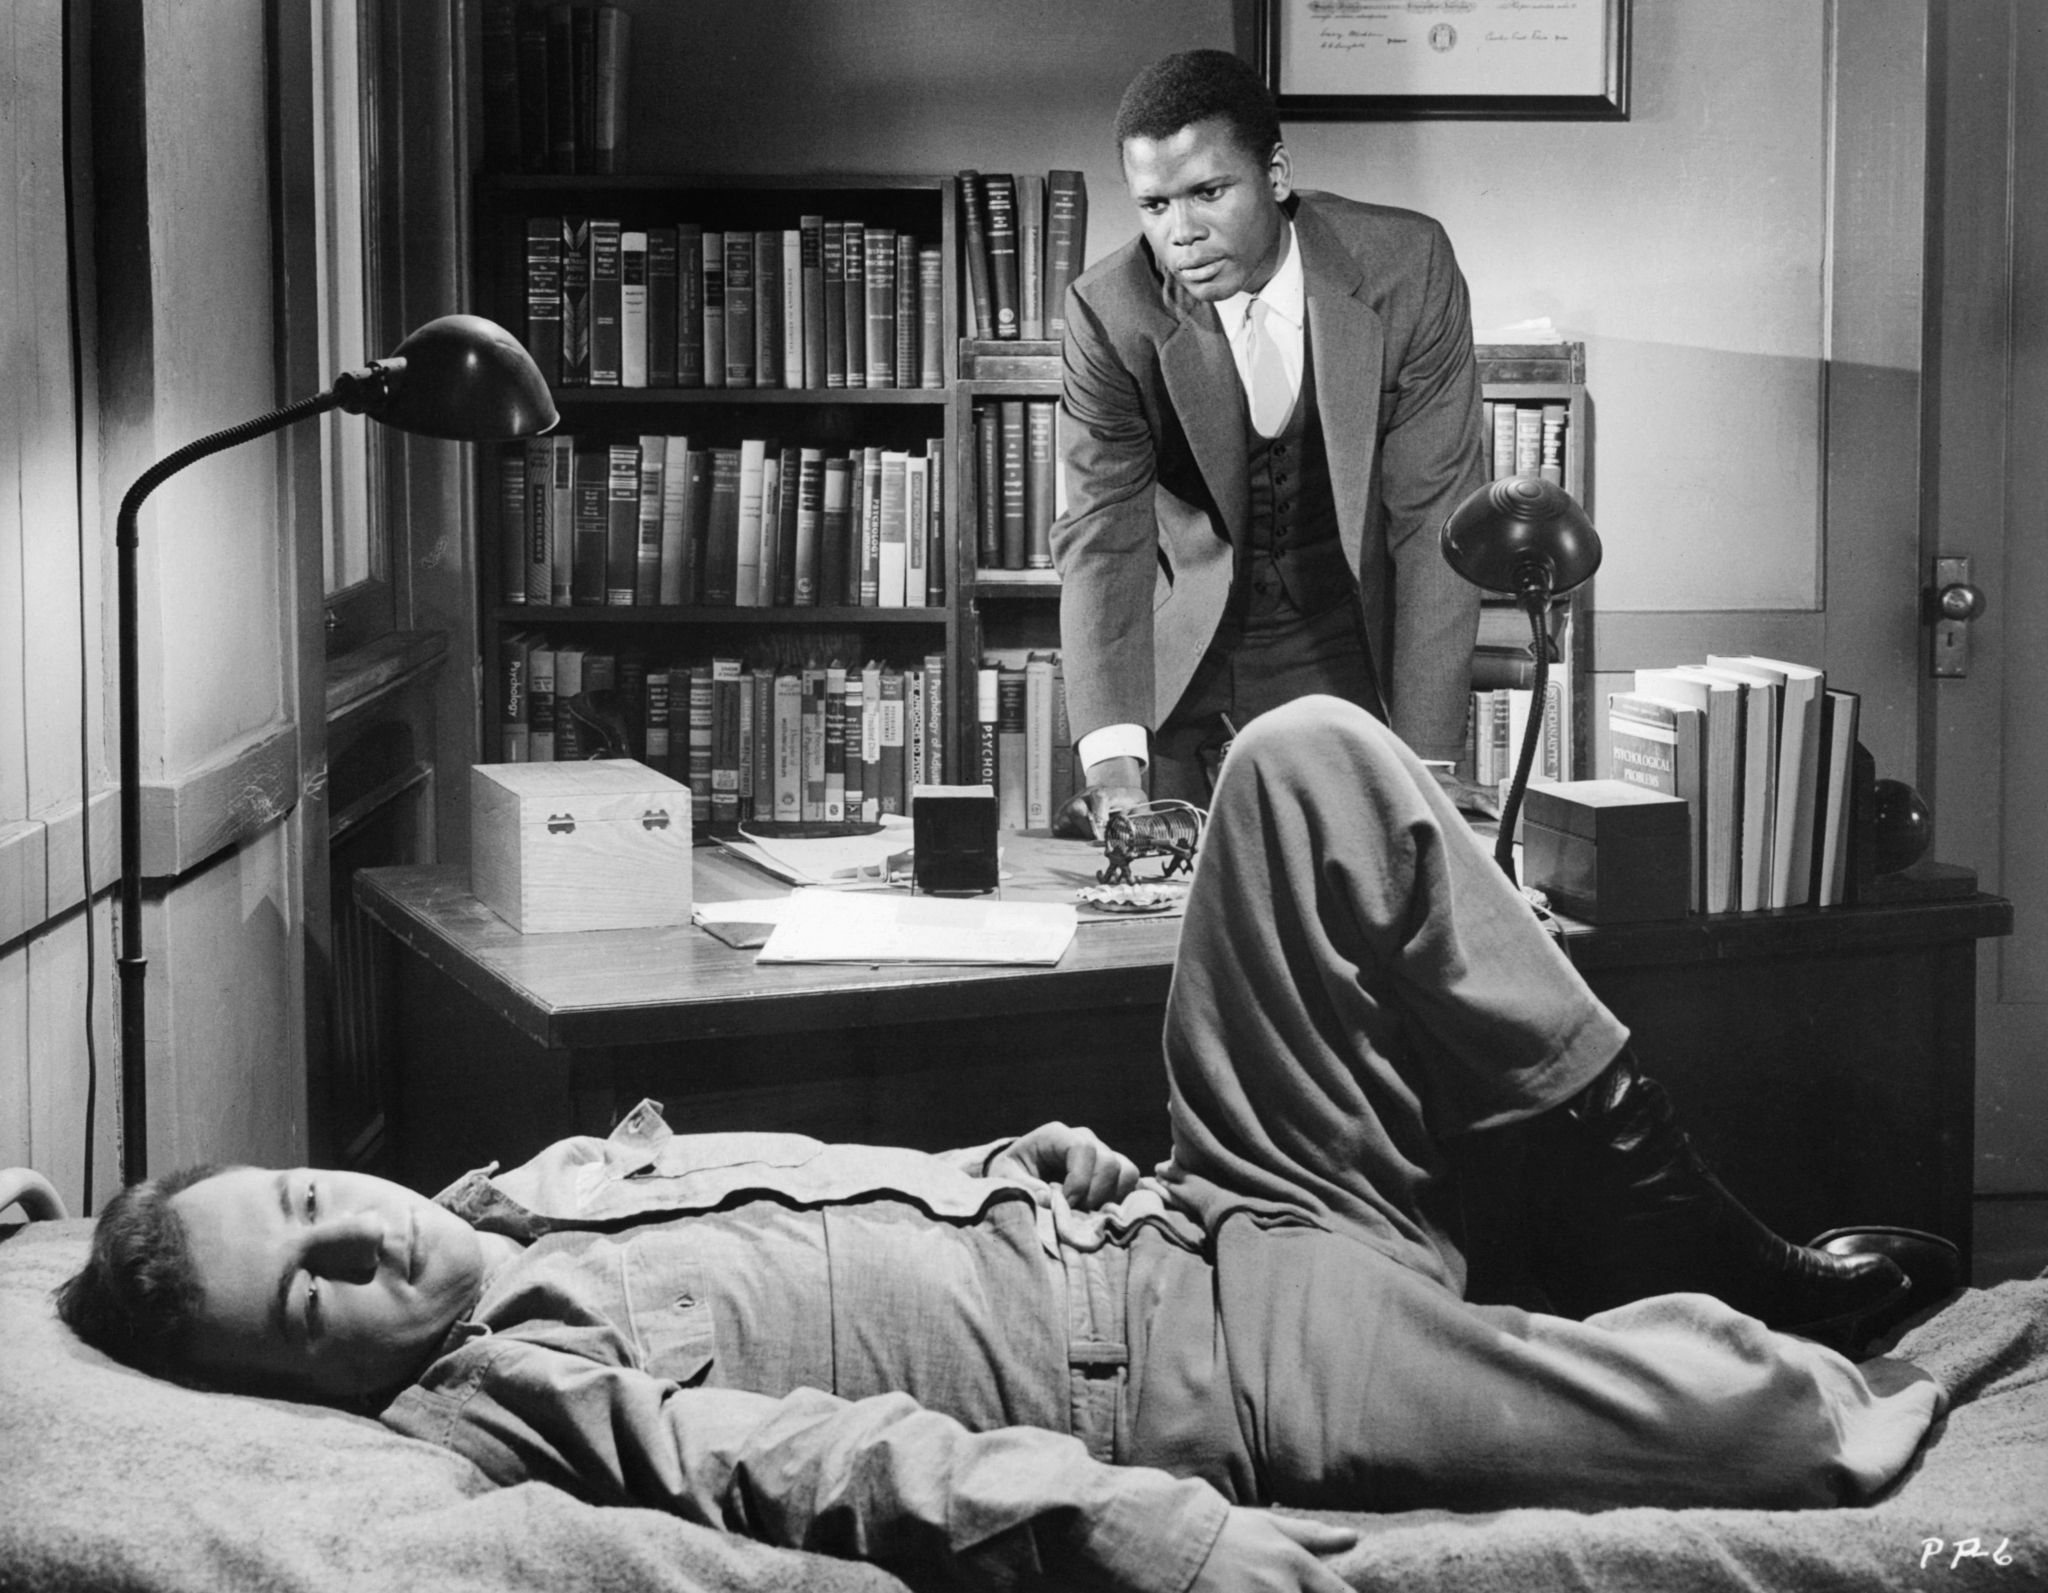 Sidney Poitier and Bobby Darin in Pressure Point (1962)